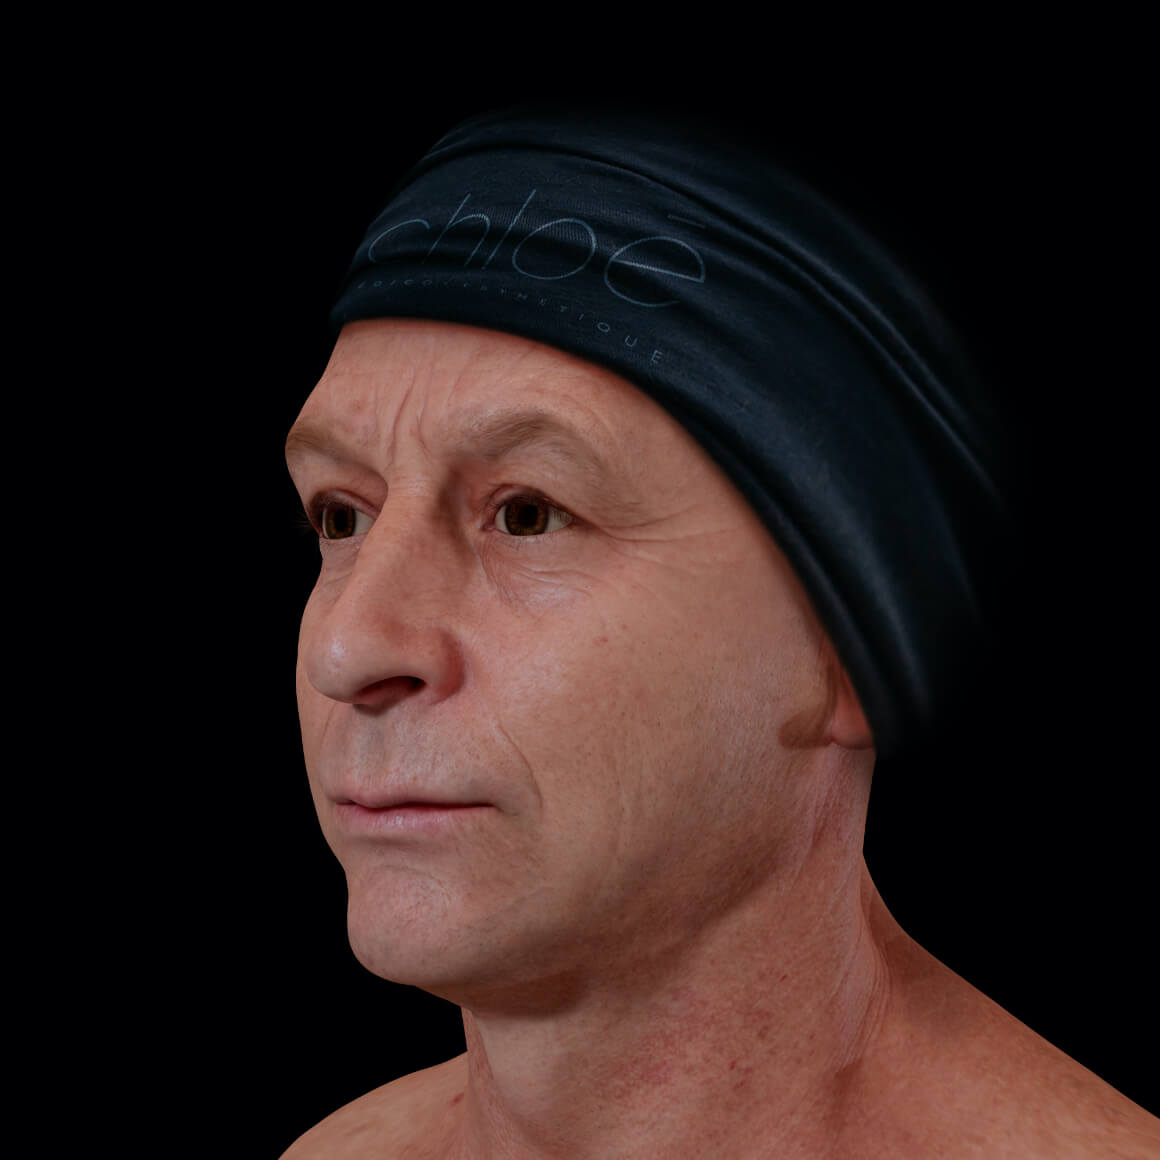 Male patient from Clinique Chloé positioned at an angle after fractional laser treatments for facial skin laxity